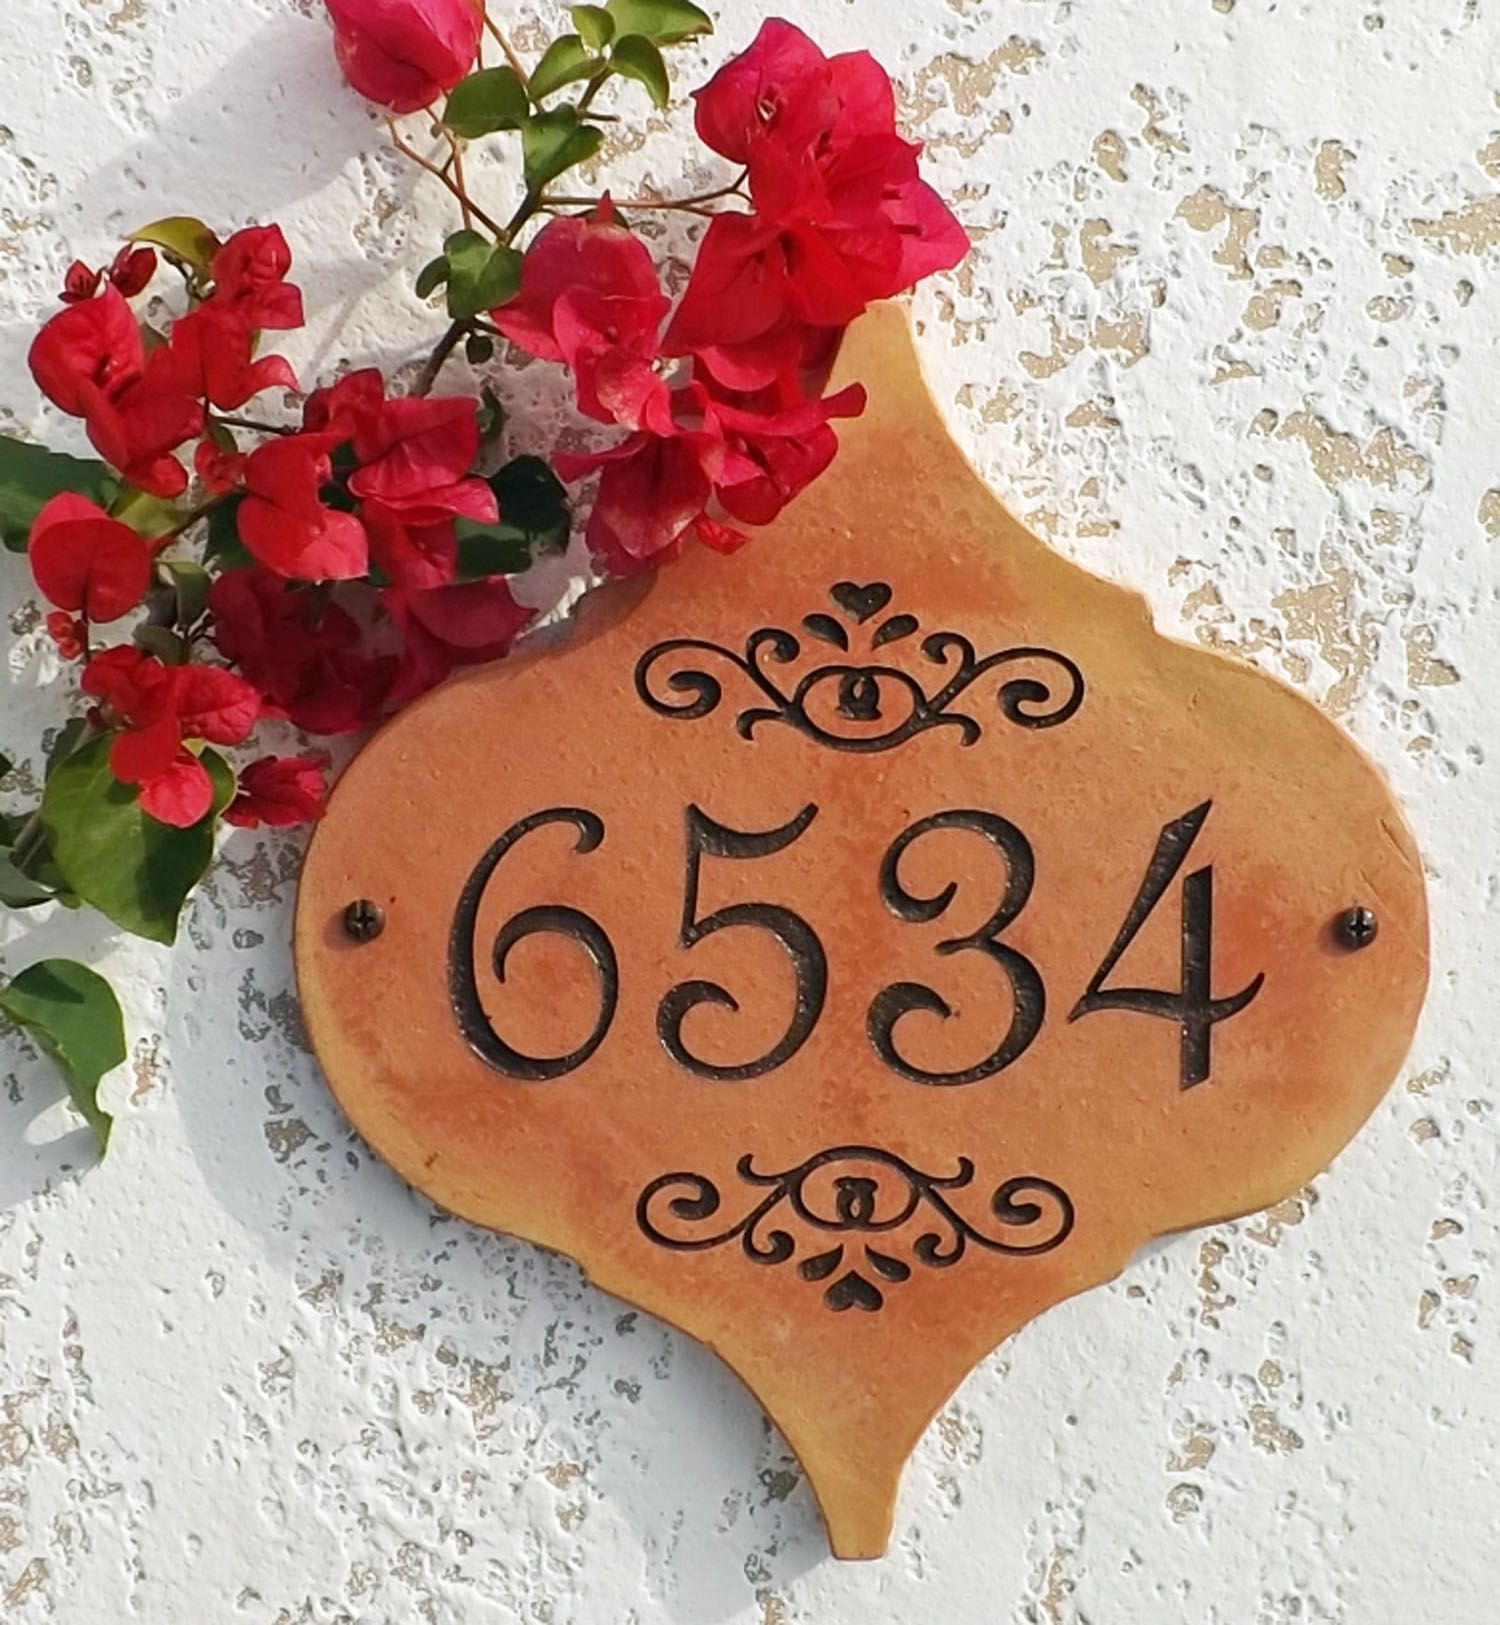 Terracotta House Numbers Spanish Mexican Tile House Number Mediterranean House Numbers Mediterranean Decor Tile House Numbers